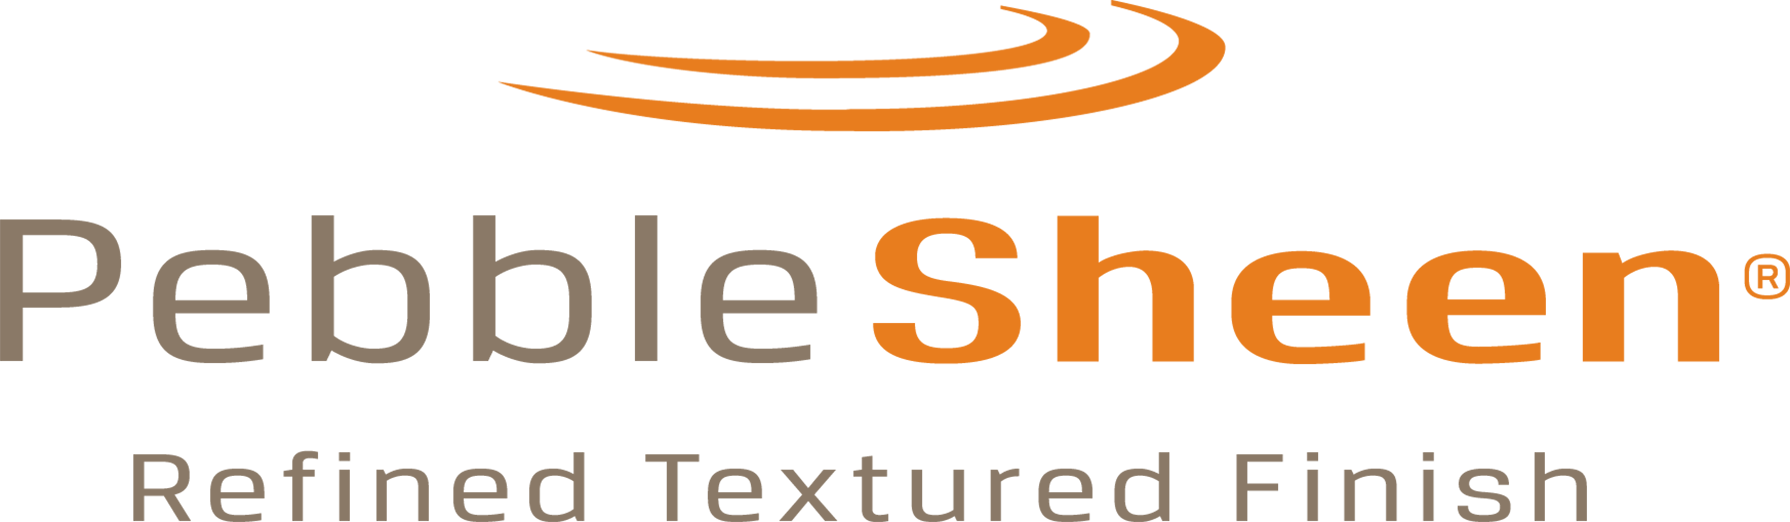 PebbleSheen pool finishes logo